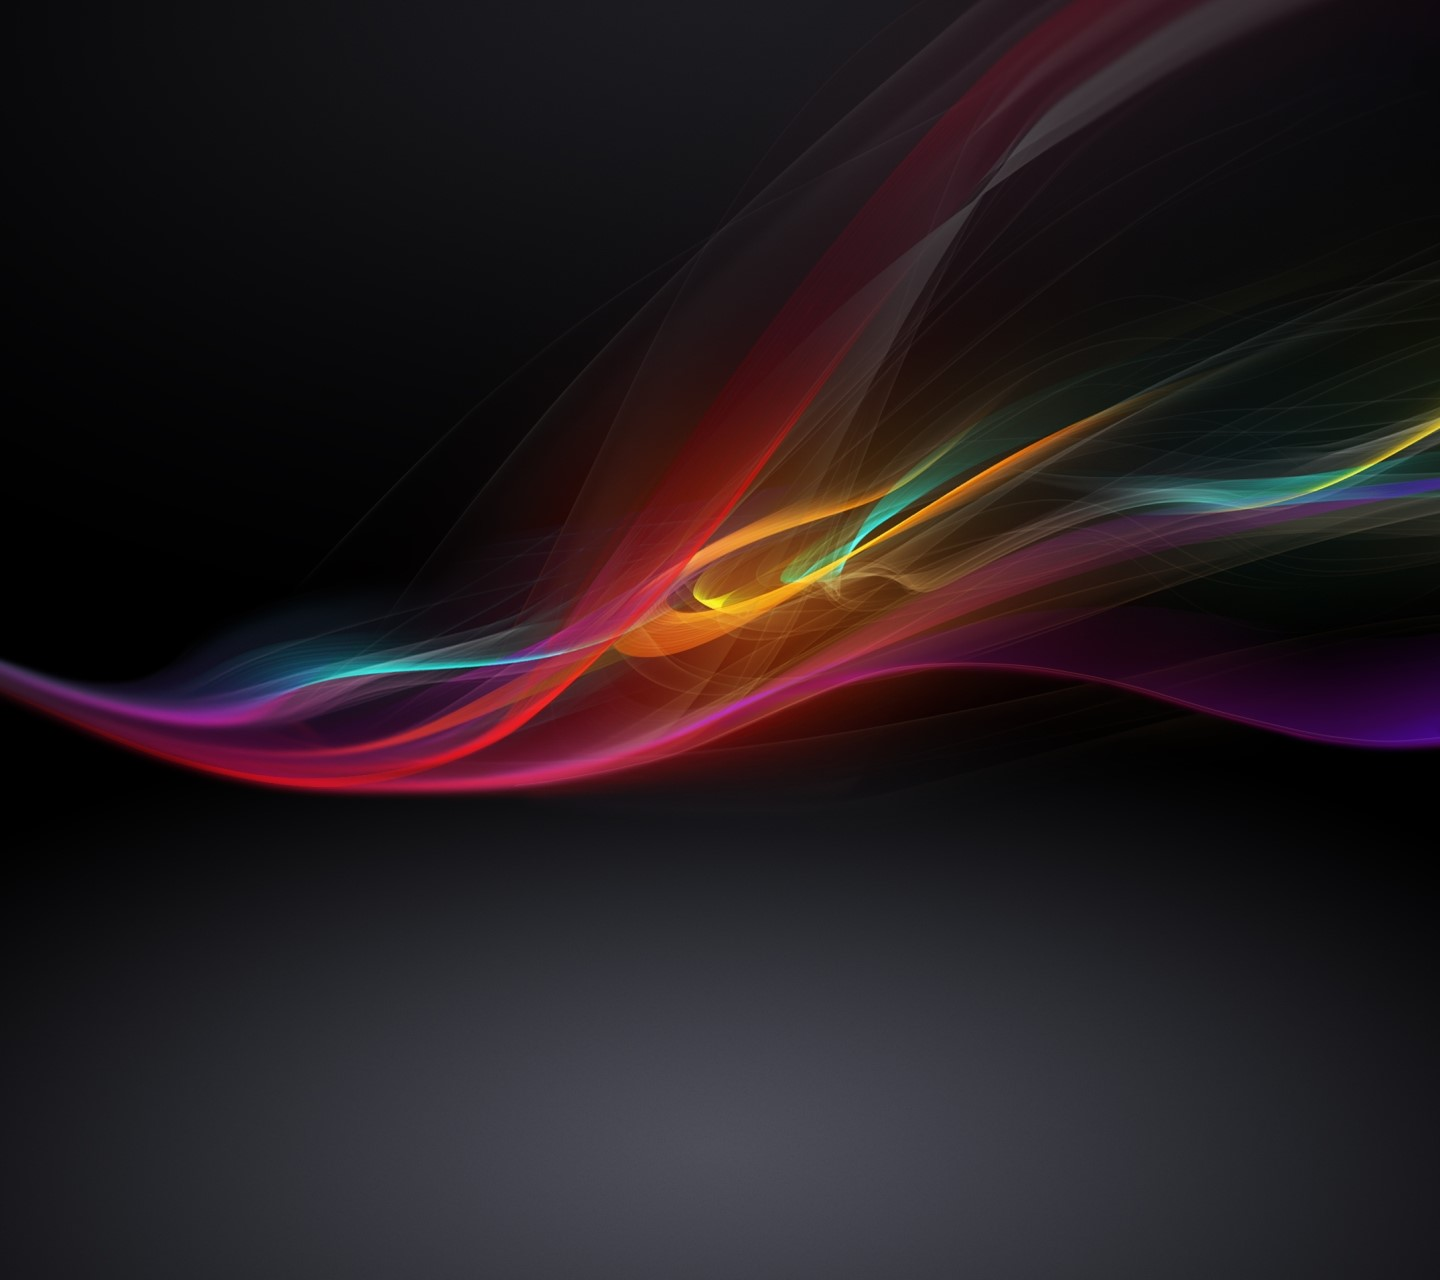 Xperia Z wallpaper 9496396